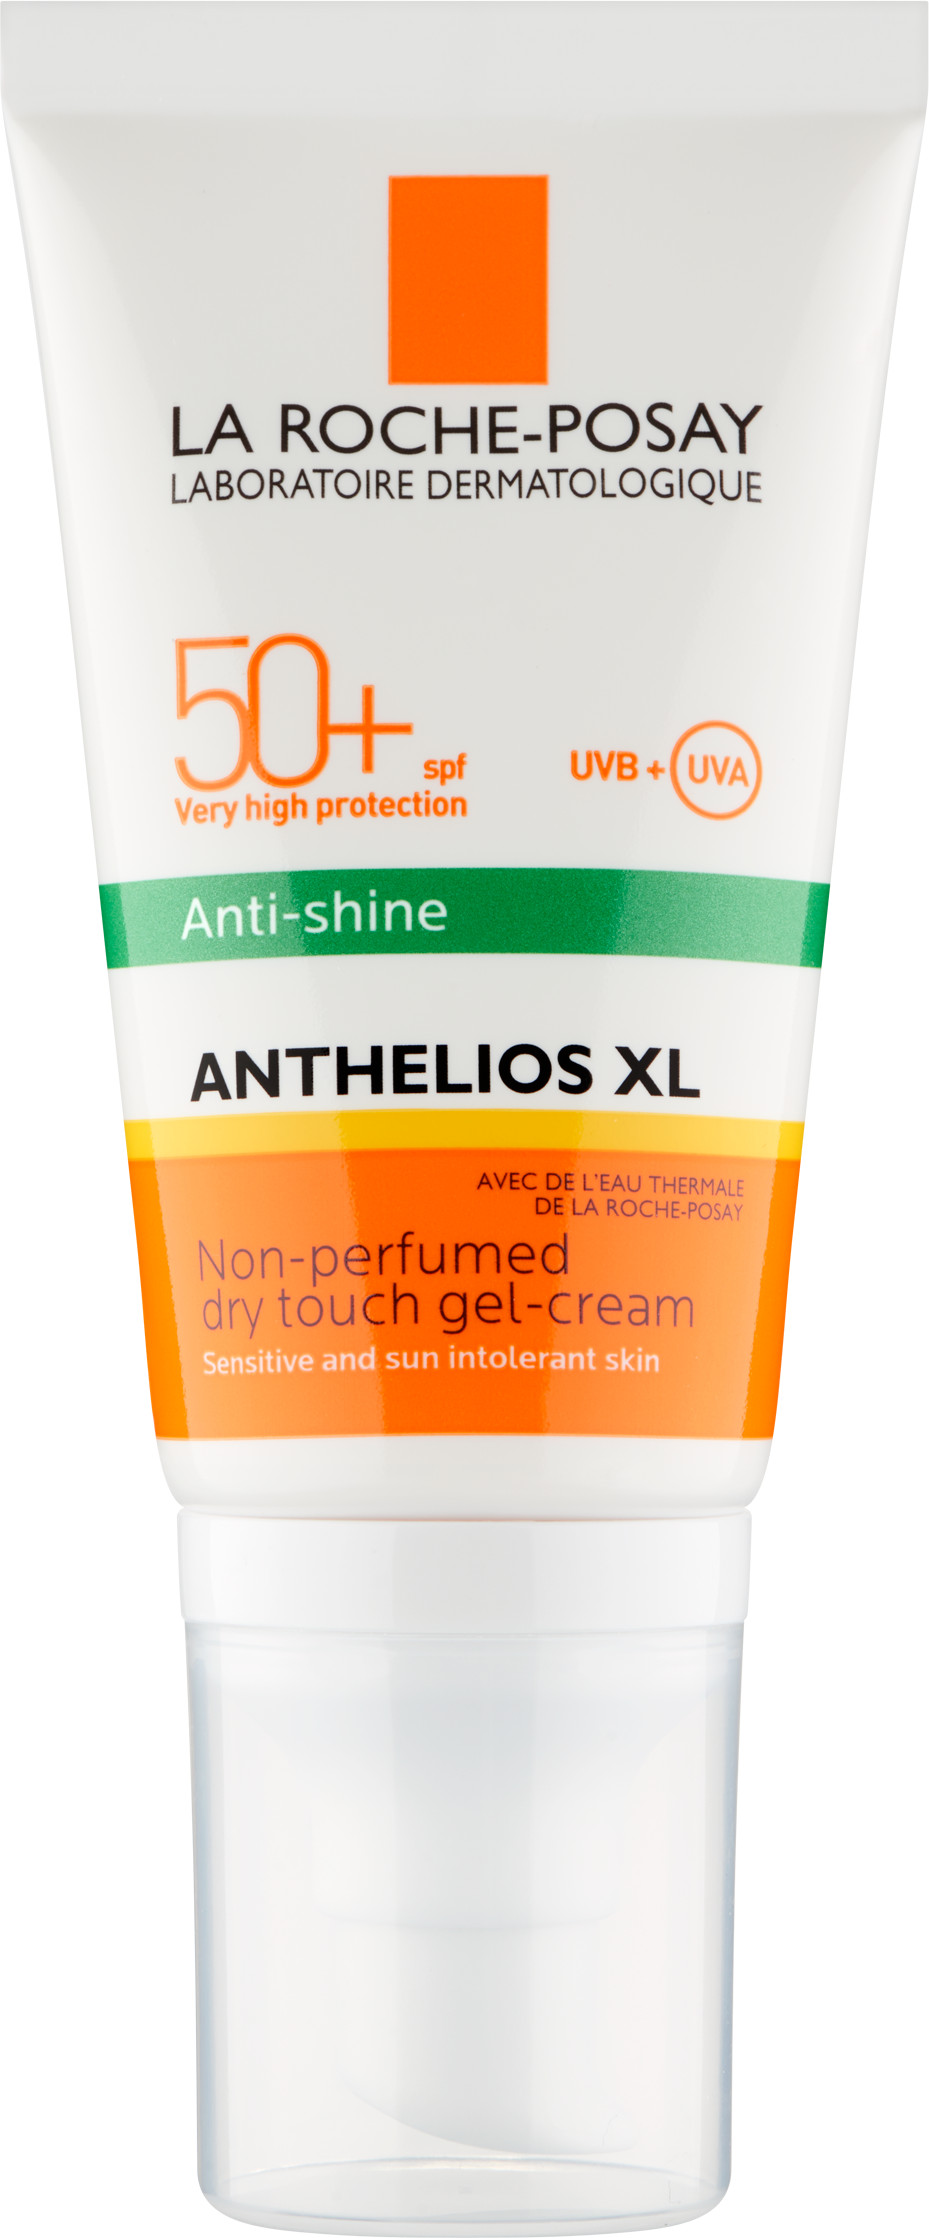 La Roche-Posay Anthelios Anti-Shine Spf50+